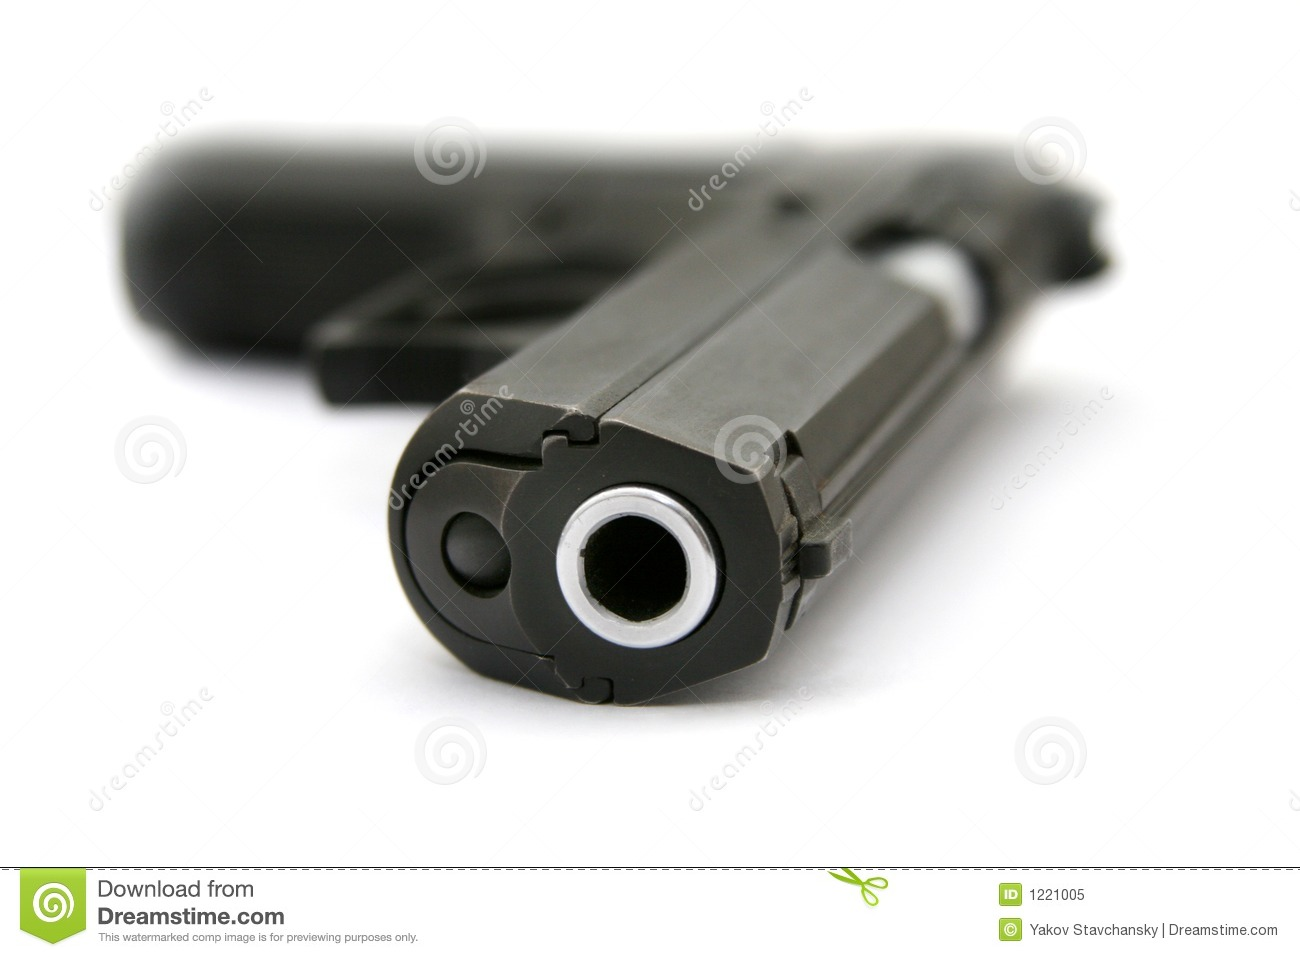 The Pistol Laying On A Table Royalty Free Stock Photo ...